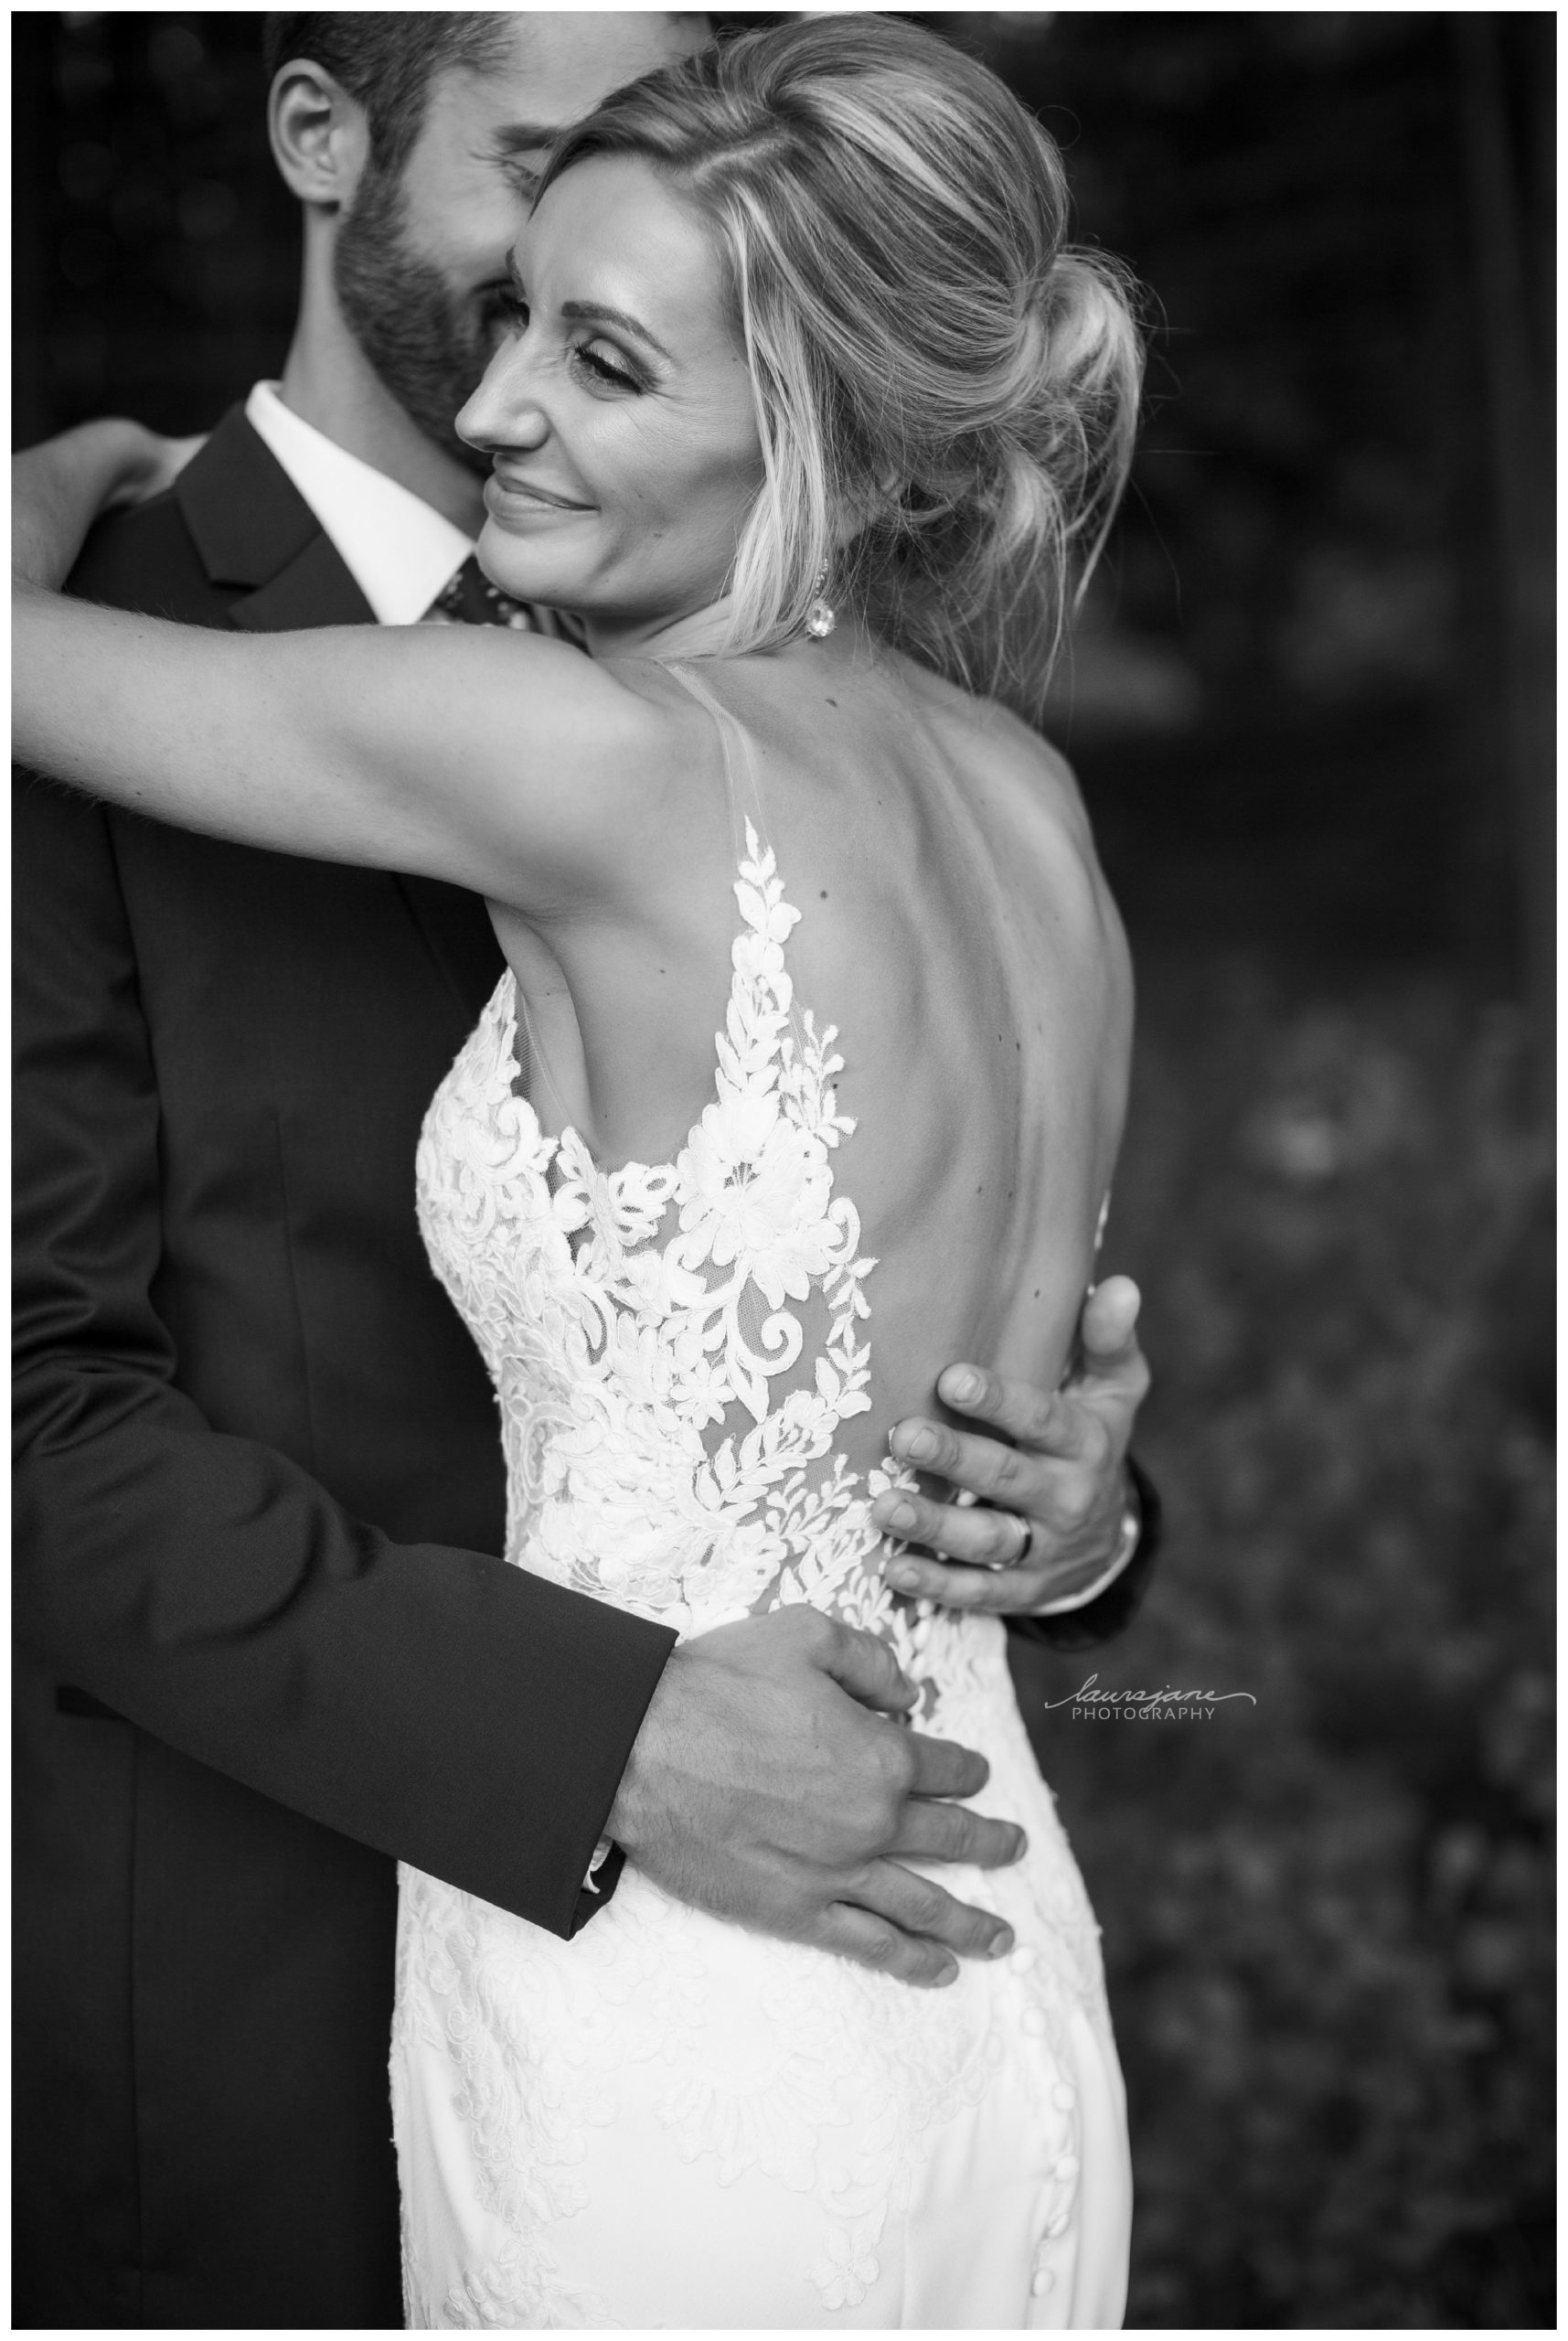 Hugging Wedding Photos Waukesha